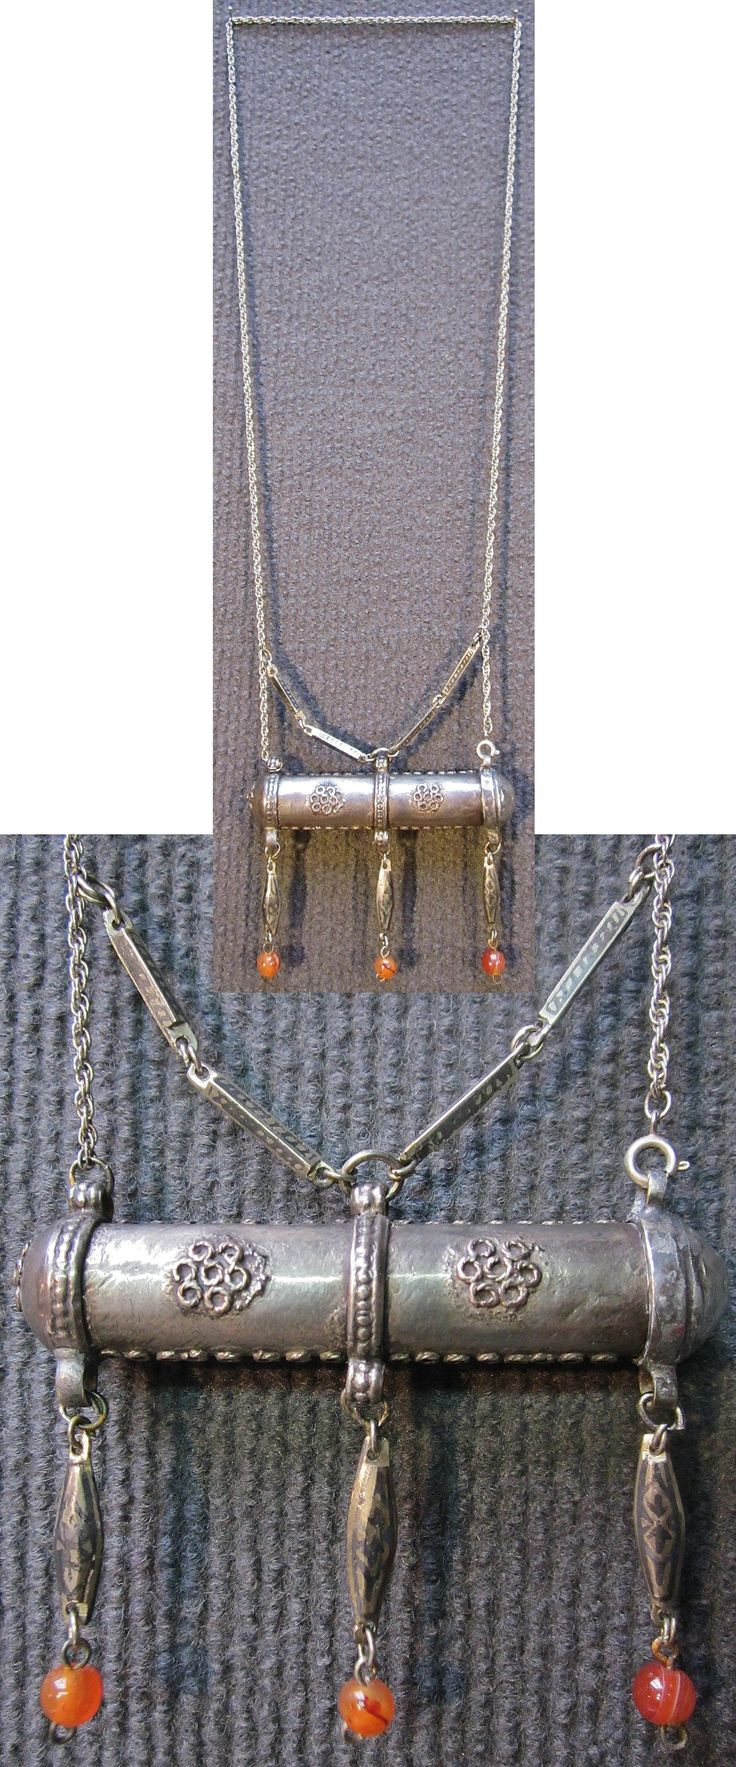 Silver 'muskalık'-necklace (with 'amulet-holder').  From eastern or southeastern Anatolia, possibly Kurdish, ca. 1900.  With niello (on the chains and dangles) and agate (dangles).  The cylinder box is 85 mm wide and has a diameter of 16 mm.  The chains are 66 cm long.   (Inv.nr. müç040 - Kavak Costume Collection - Antwerpen/Belgium).